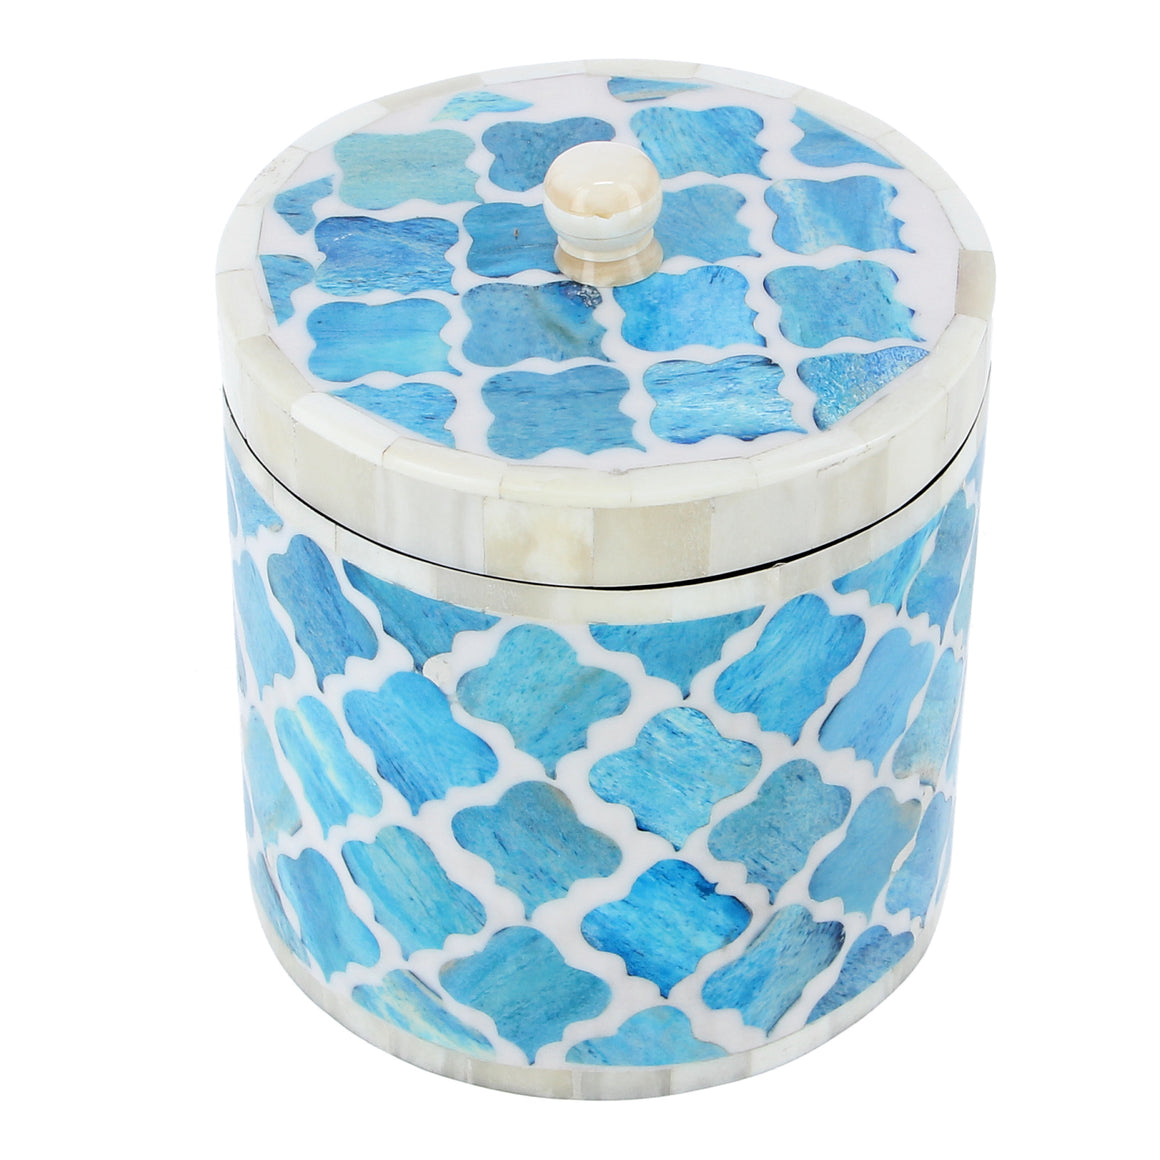 patterned ice box